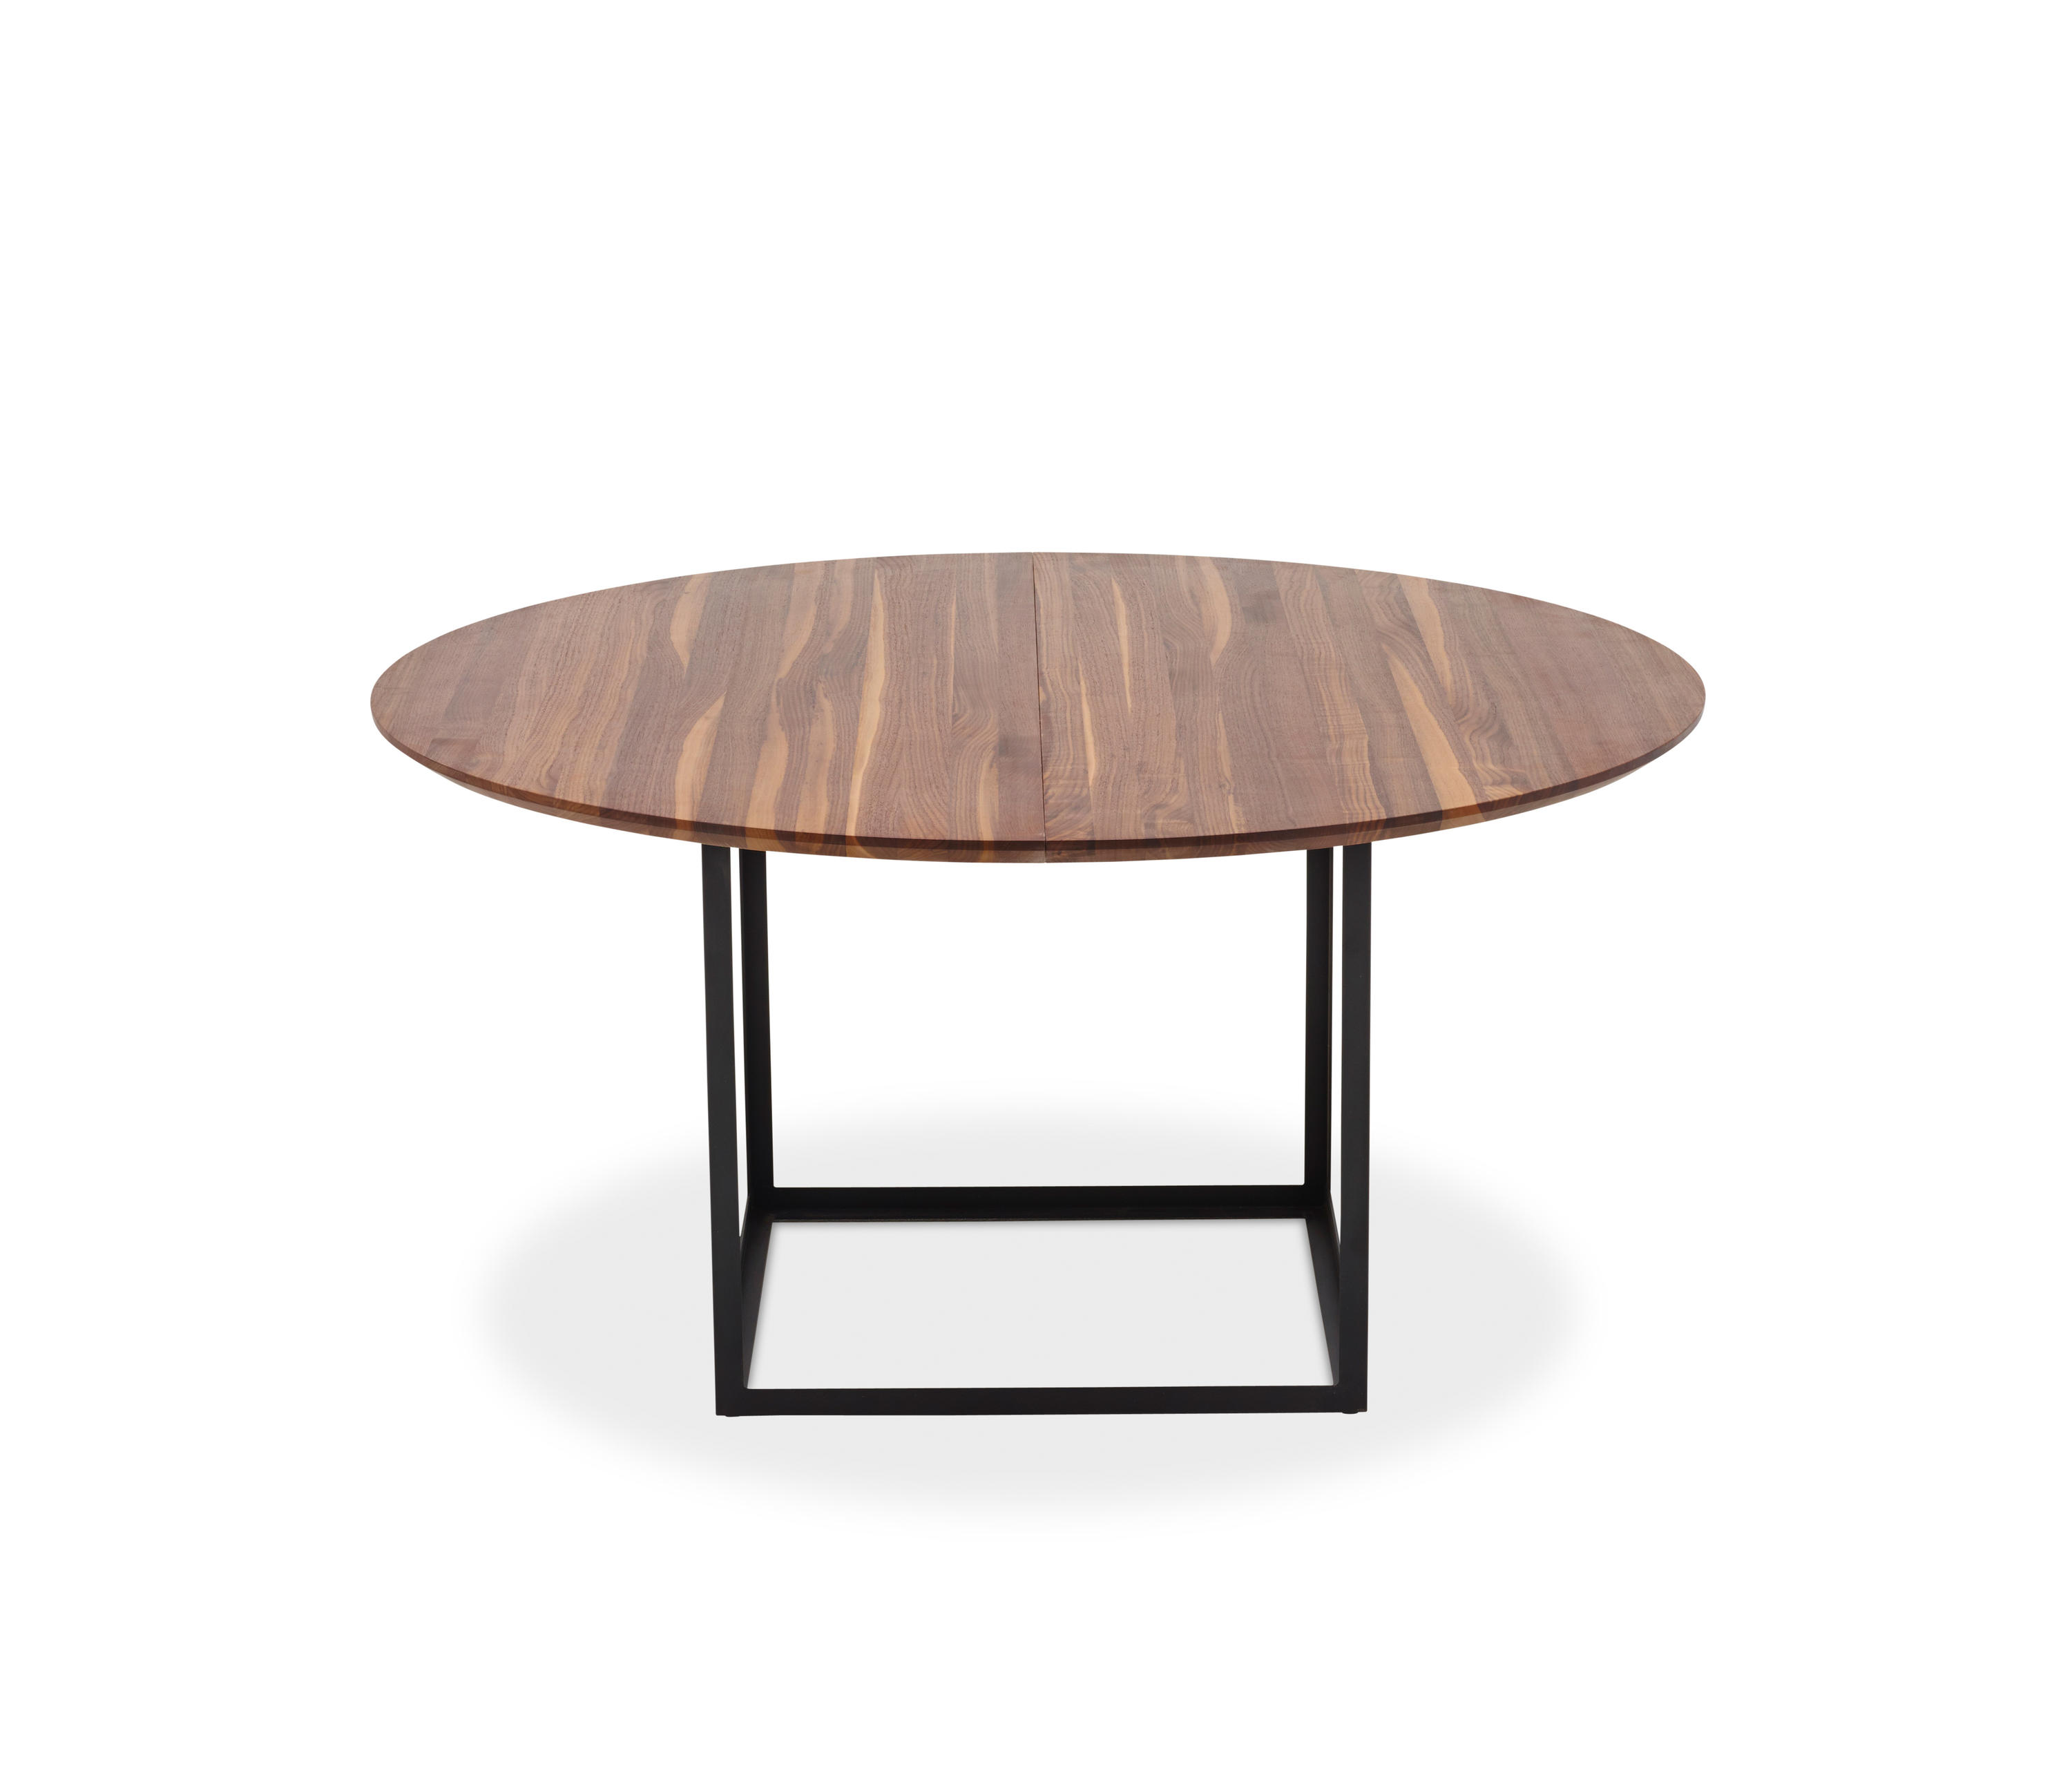 Jewel table meeting room tables from dk3 architonic for Table ronde extensible